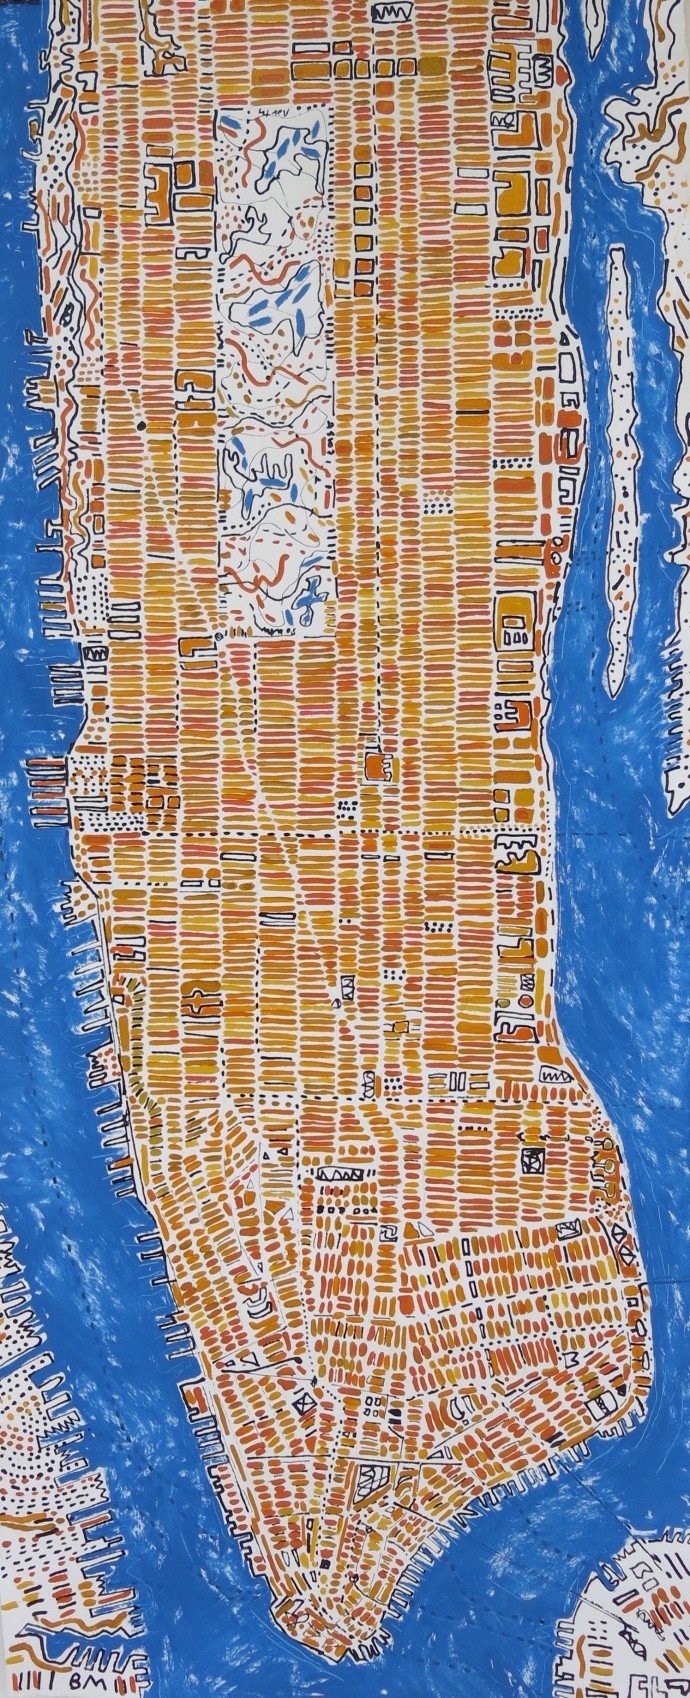 Barbara Macfarlane, Long Manhattan Yellow Ochre, 2017